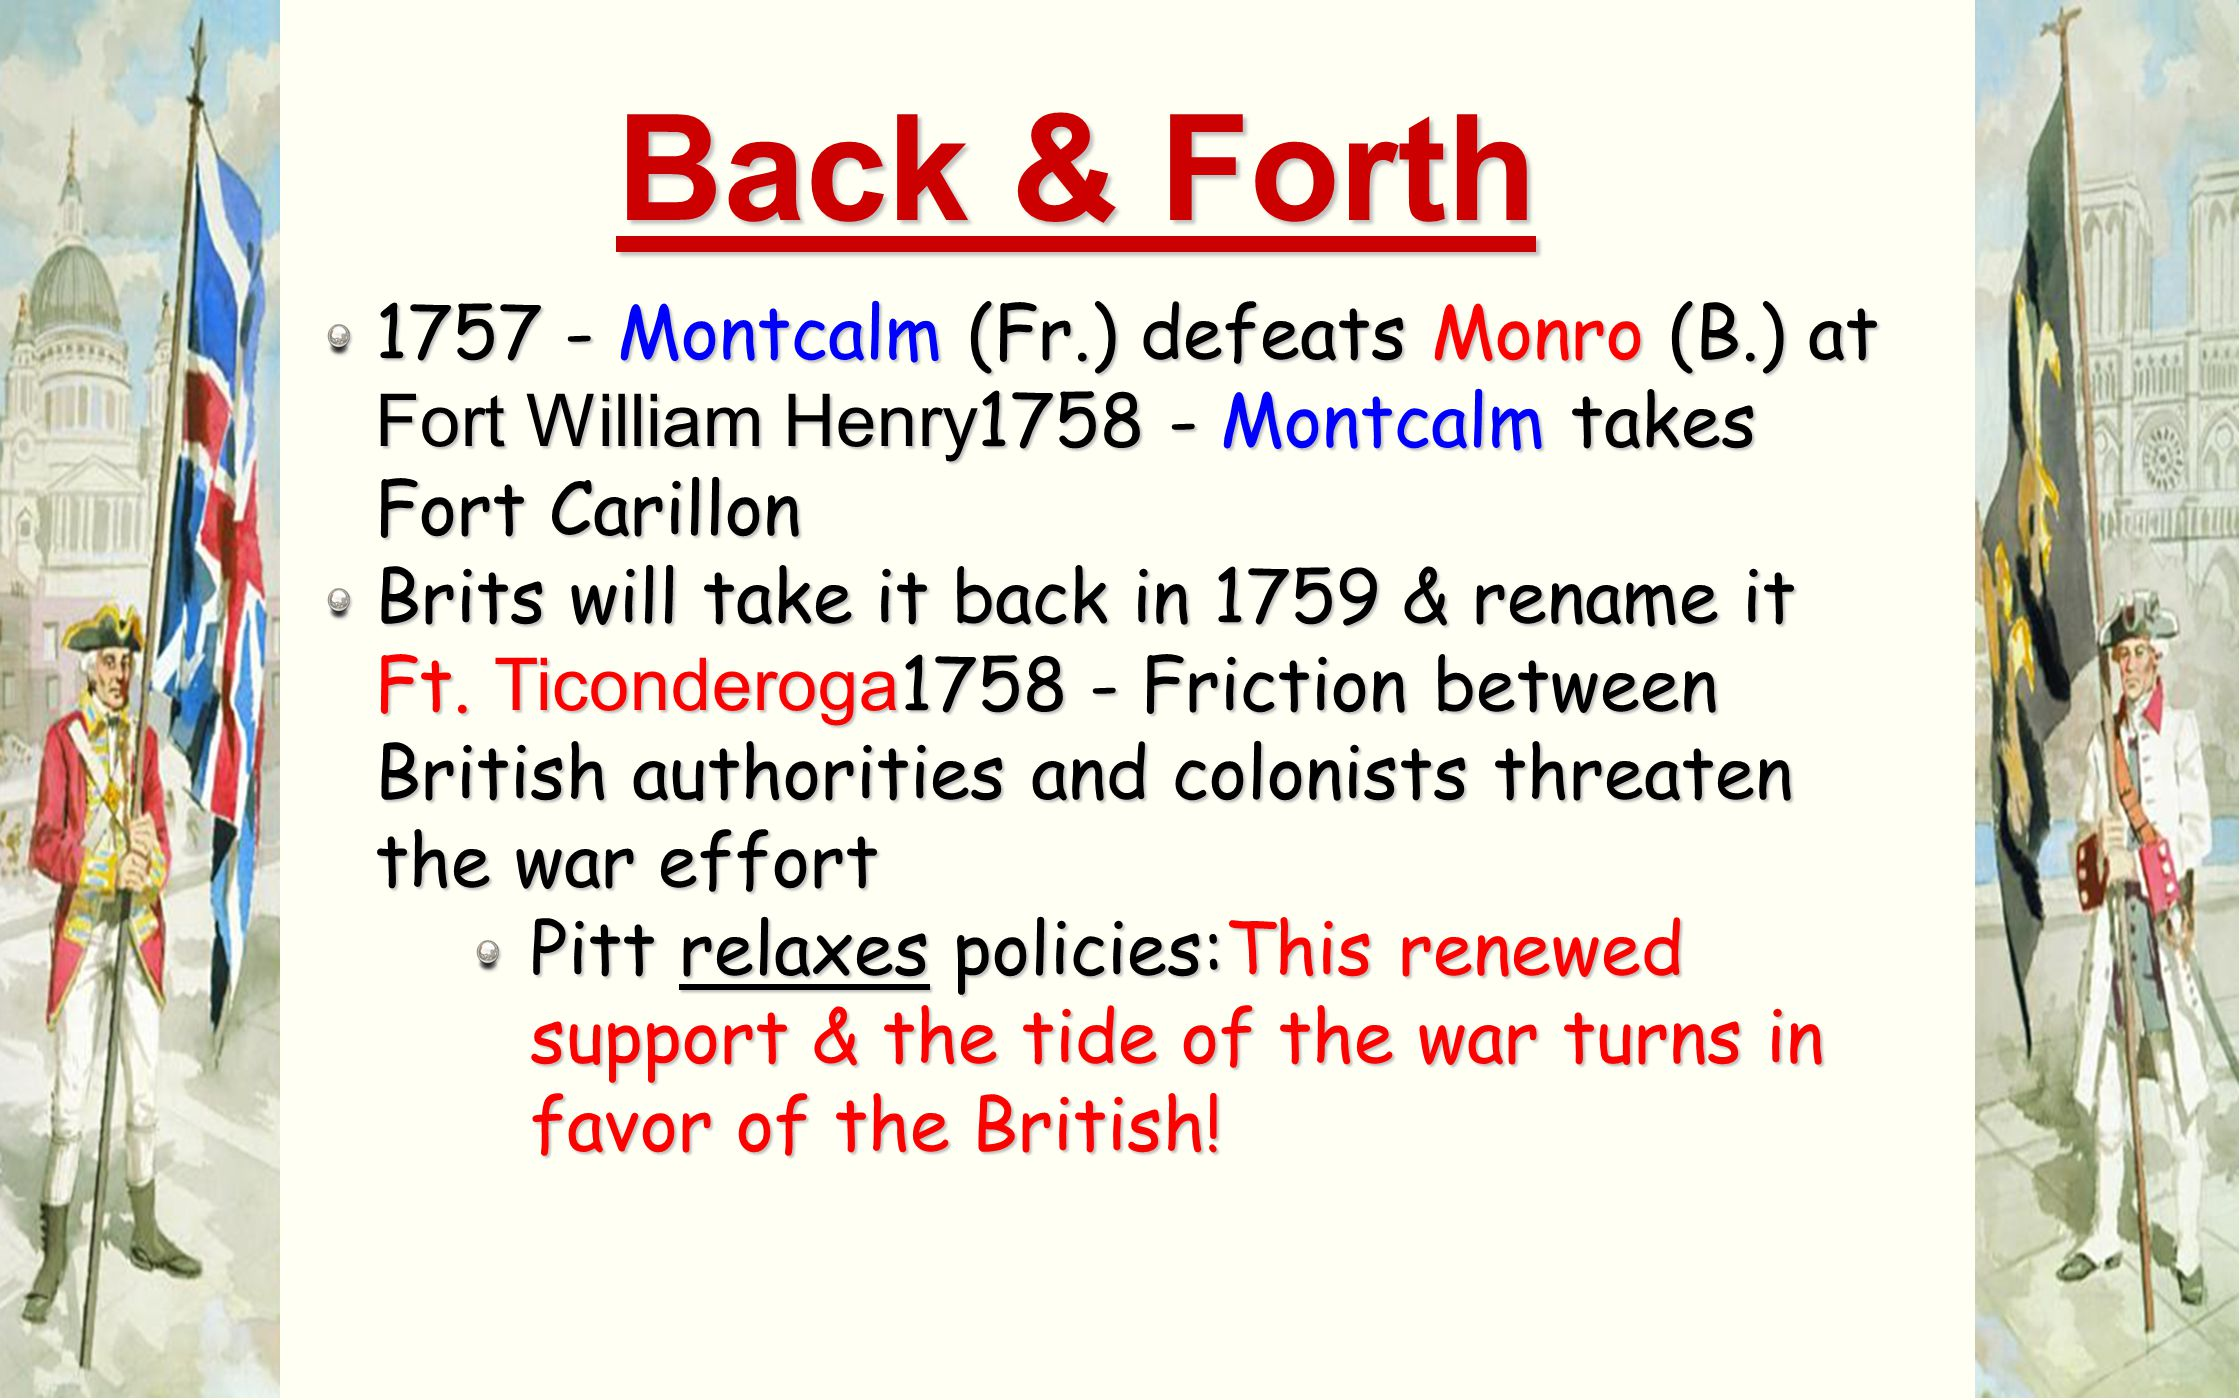 Back & Forth 1757 - Montcalm (Fr.) defeats Monro (B.) at Fort William Henry1758 - Montcalm takes Fort Carillon.